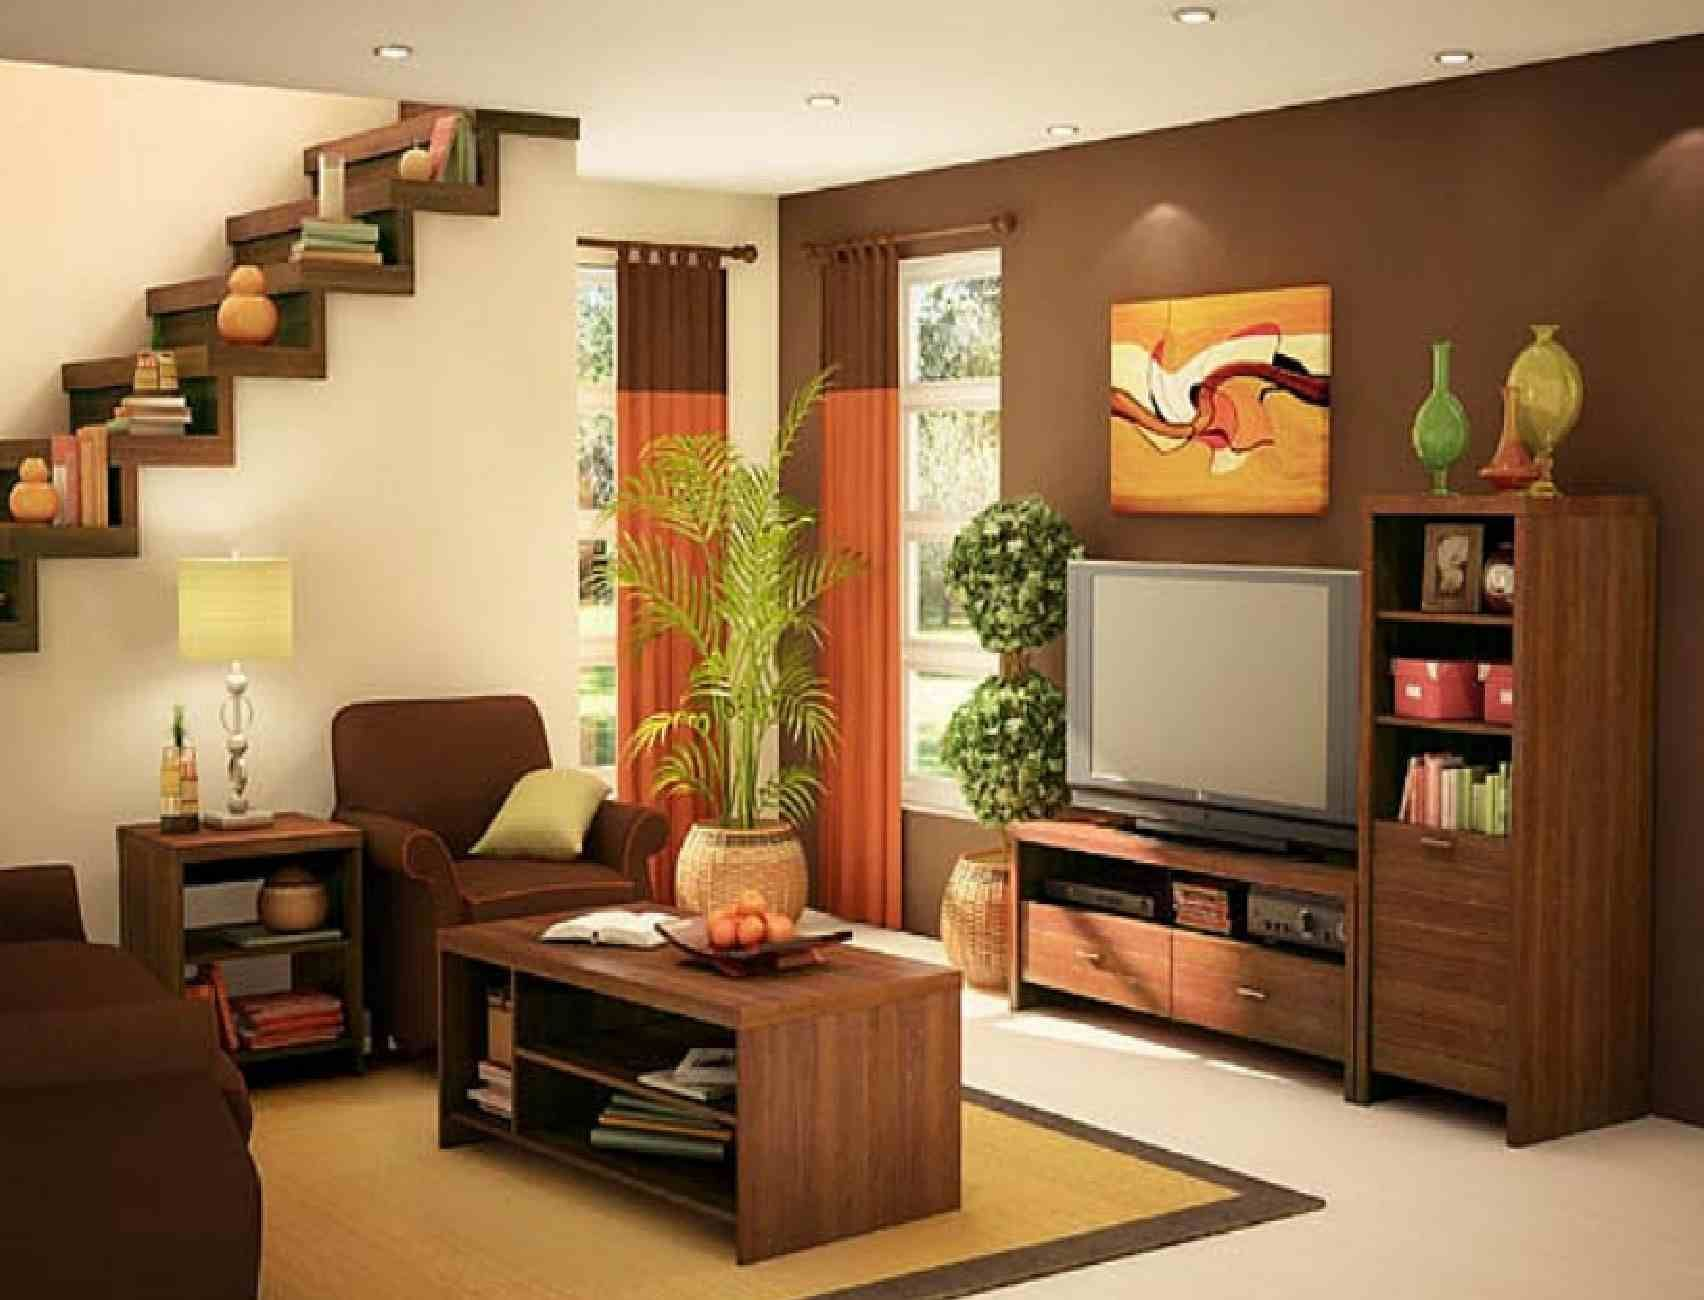 Interior Design In Small Living Room Excellent Small Apartment Living Room Idea With Brown And Cream